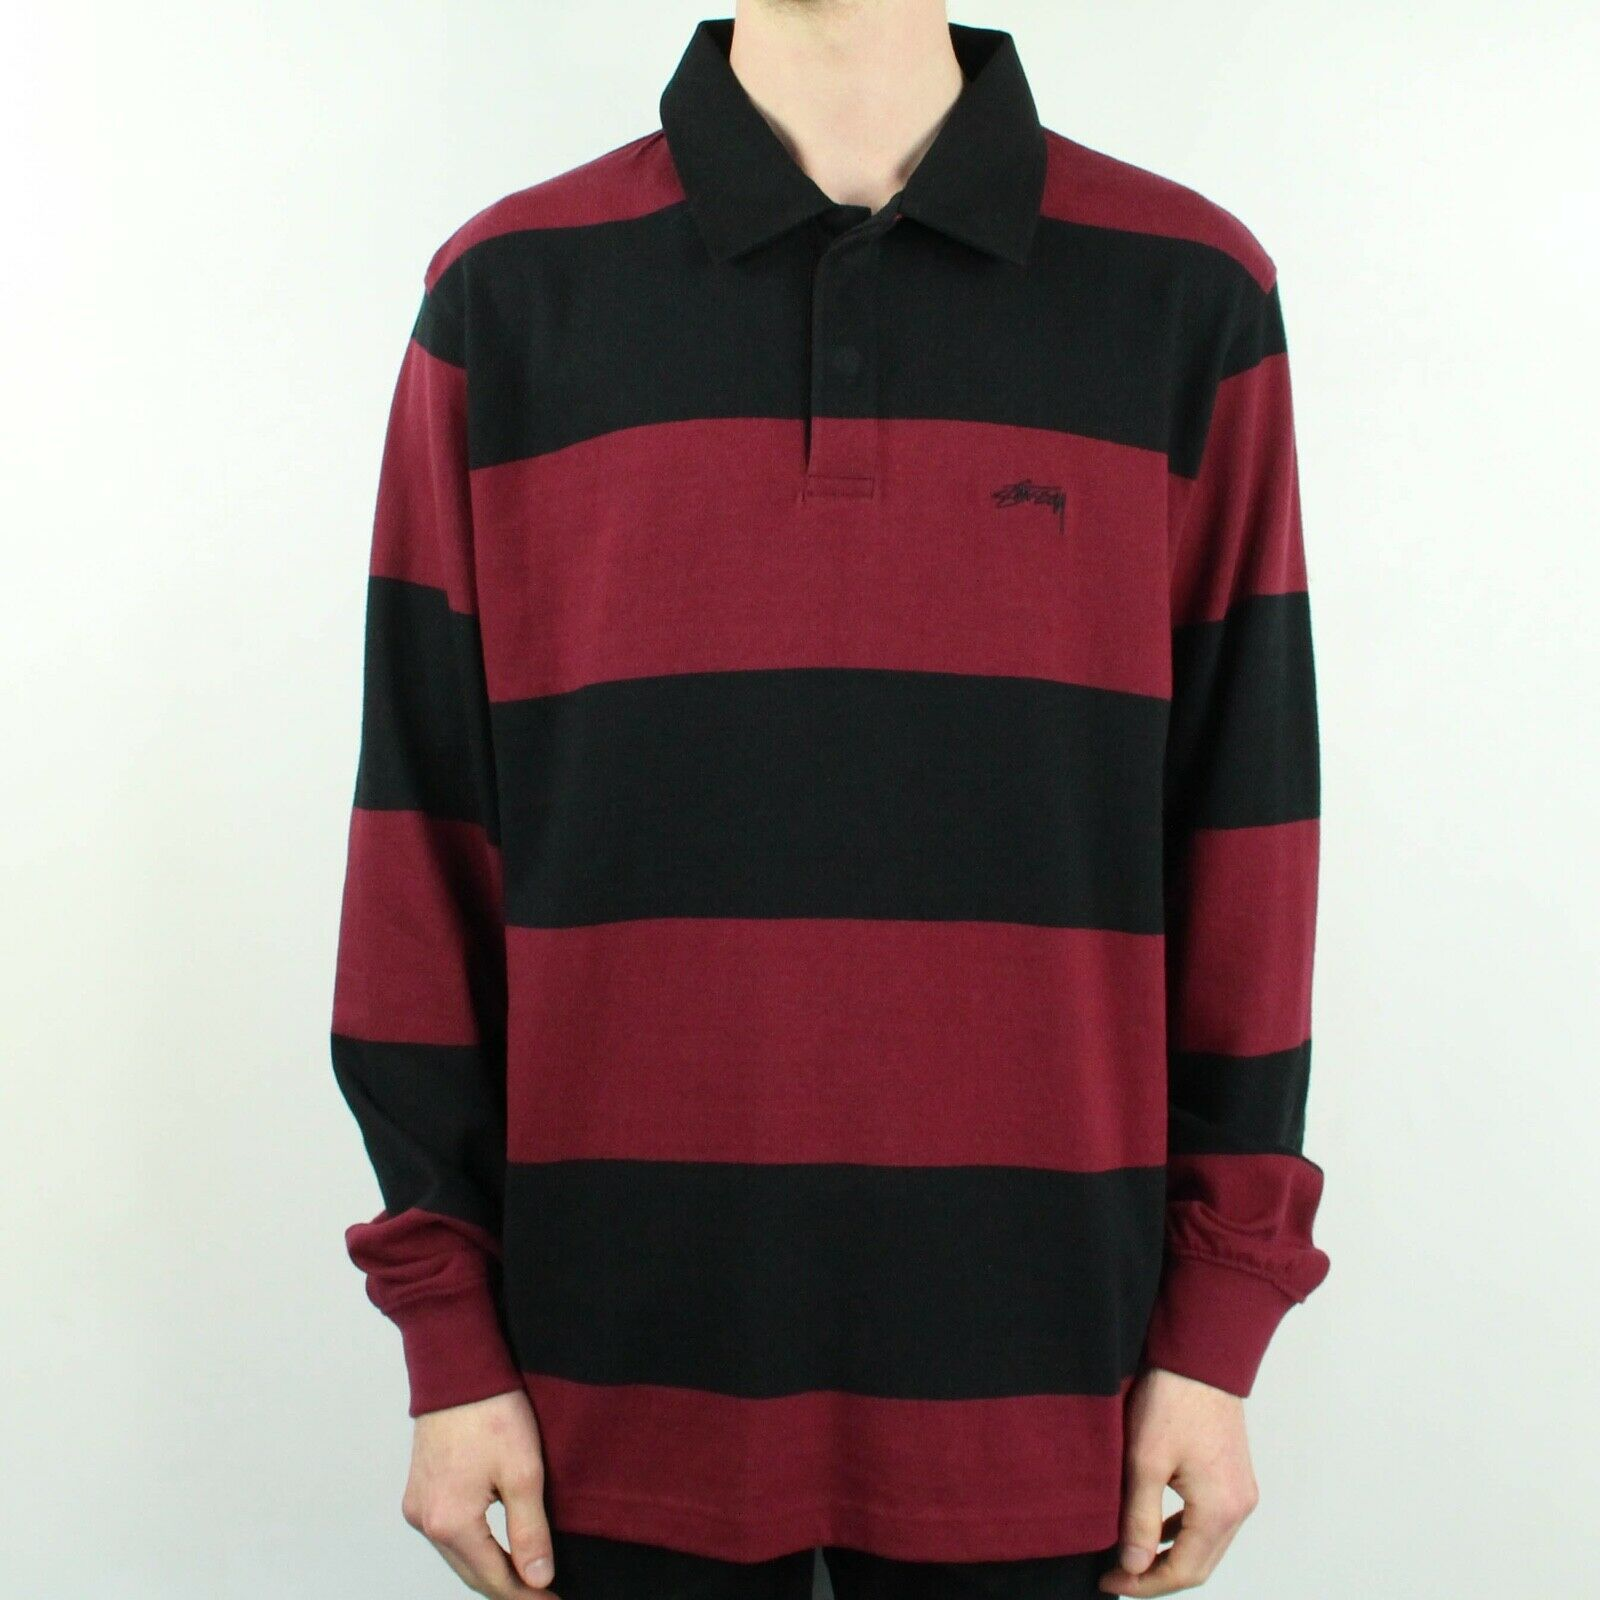 4c31bca467e Details about Stussy Ralphie Stripe Rugby Long Sleeve T-Shirt Top Black in  size S,M,L